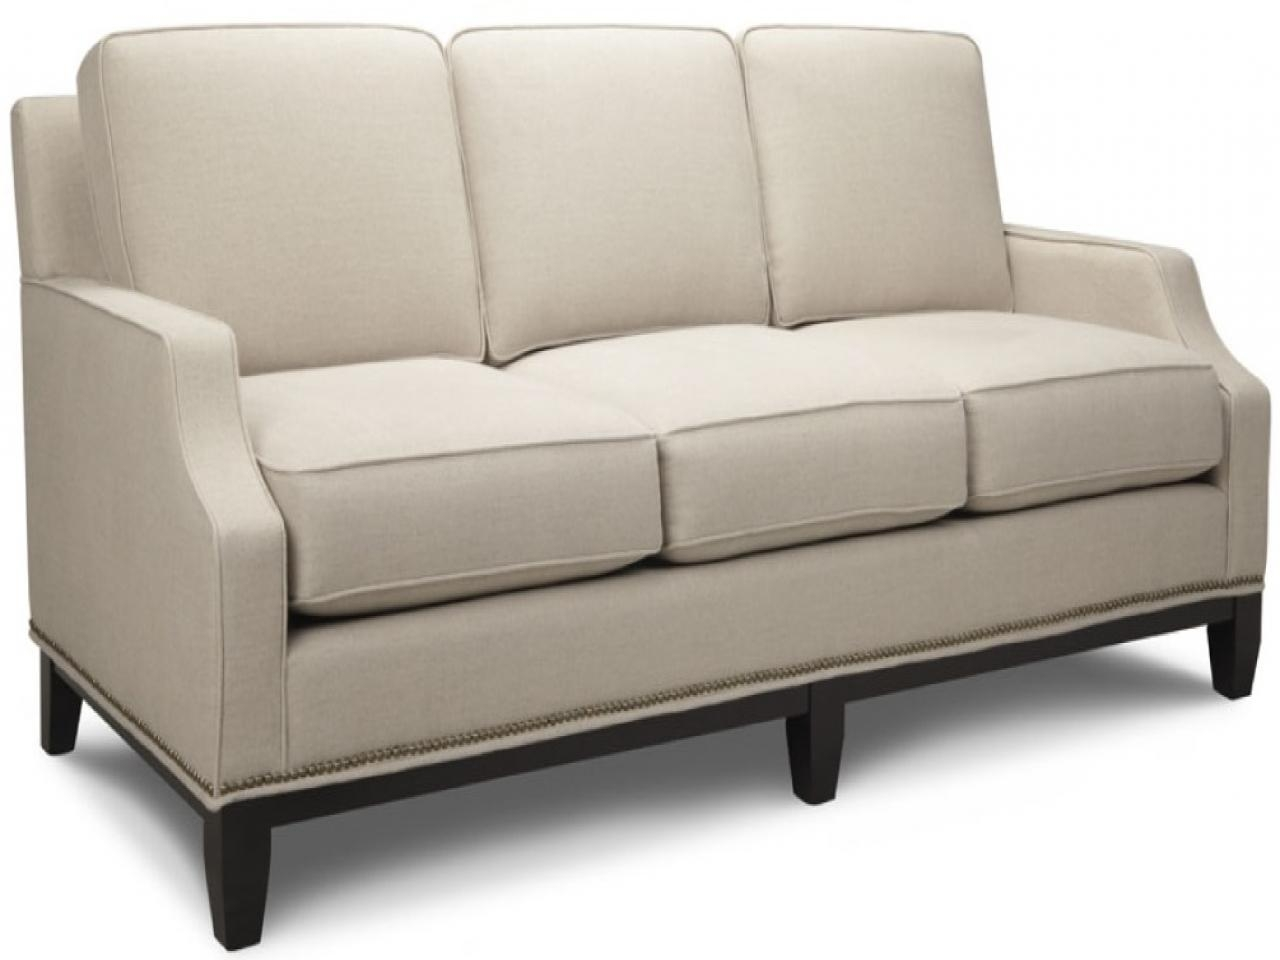 Sofas Center : Sectional Pit Sofa Unusual Images Inspirations For Unusual Sofas (Image 7 of 20)